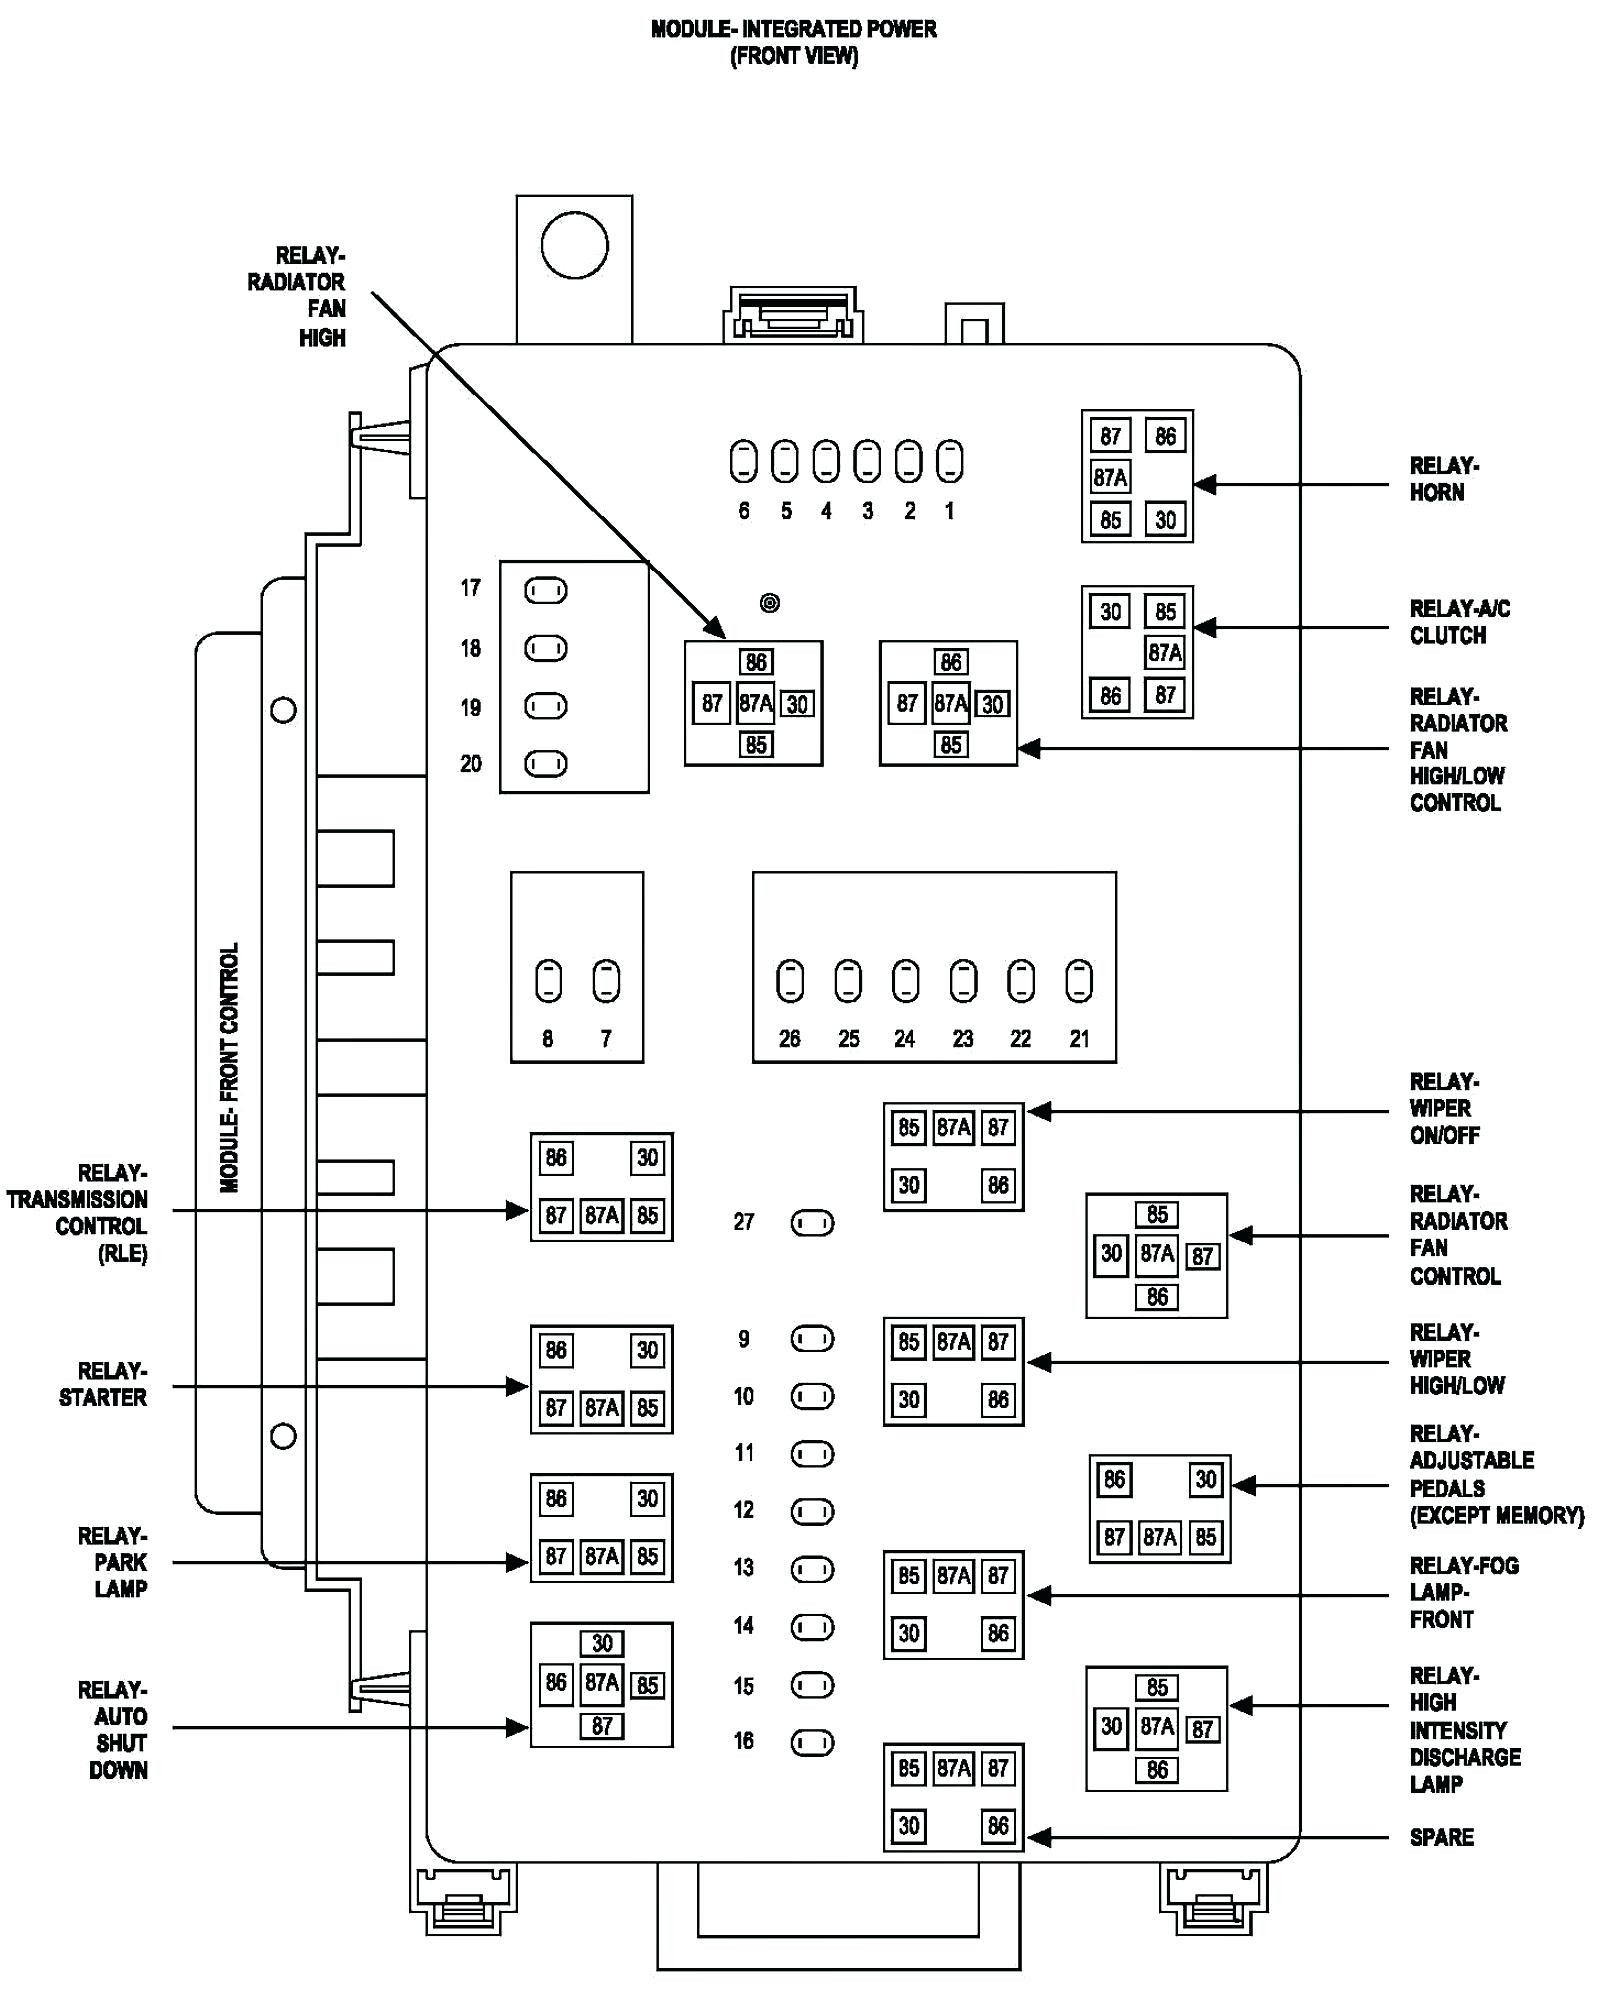 2005 Dodge Magnum Fuse Box - North Star 157309 Wiring Diagram for Wiring  Diagram SchematicsWiring Diagram Schematics